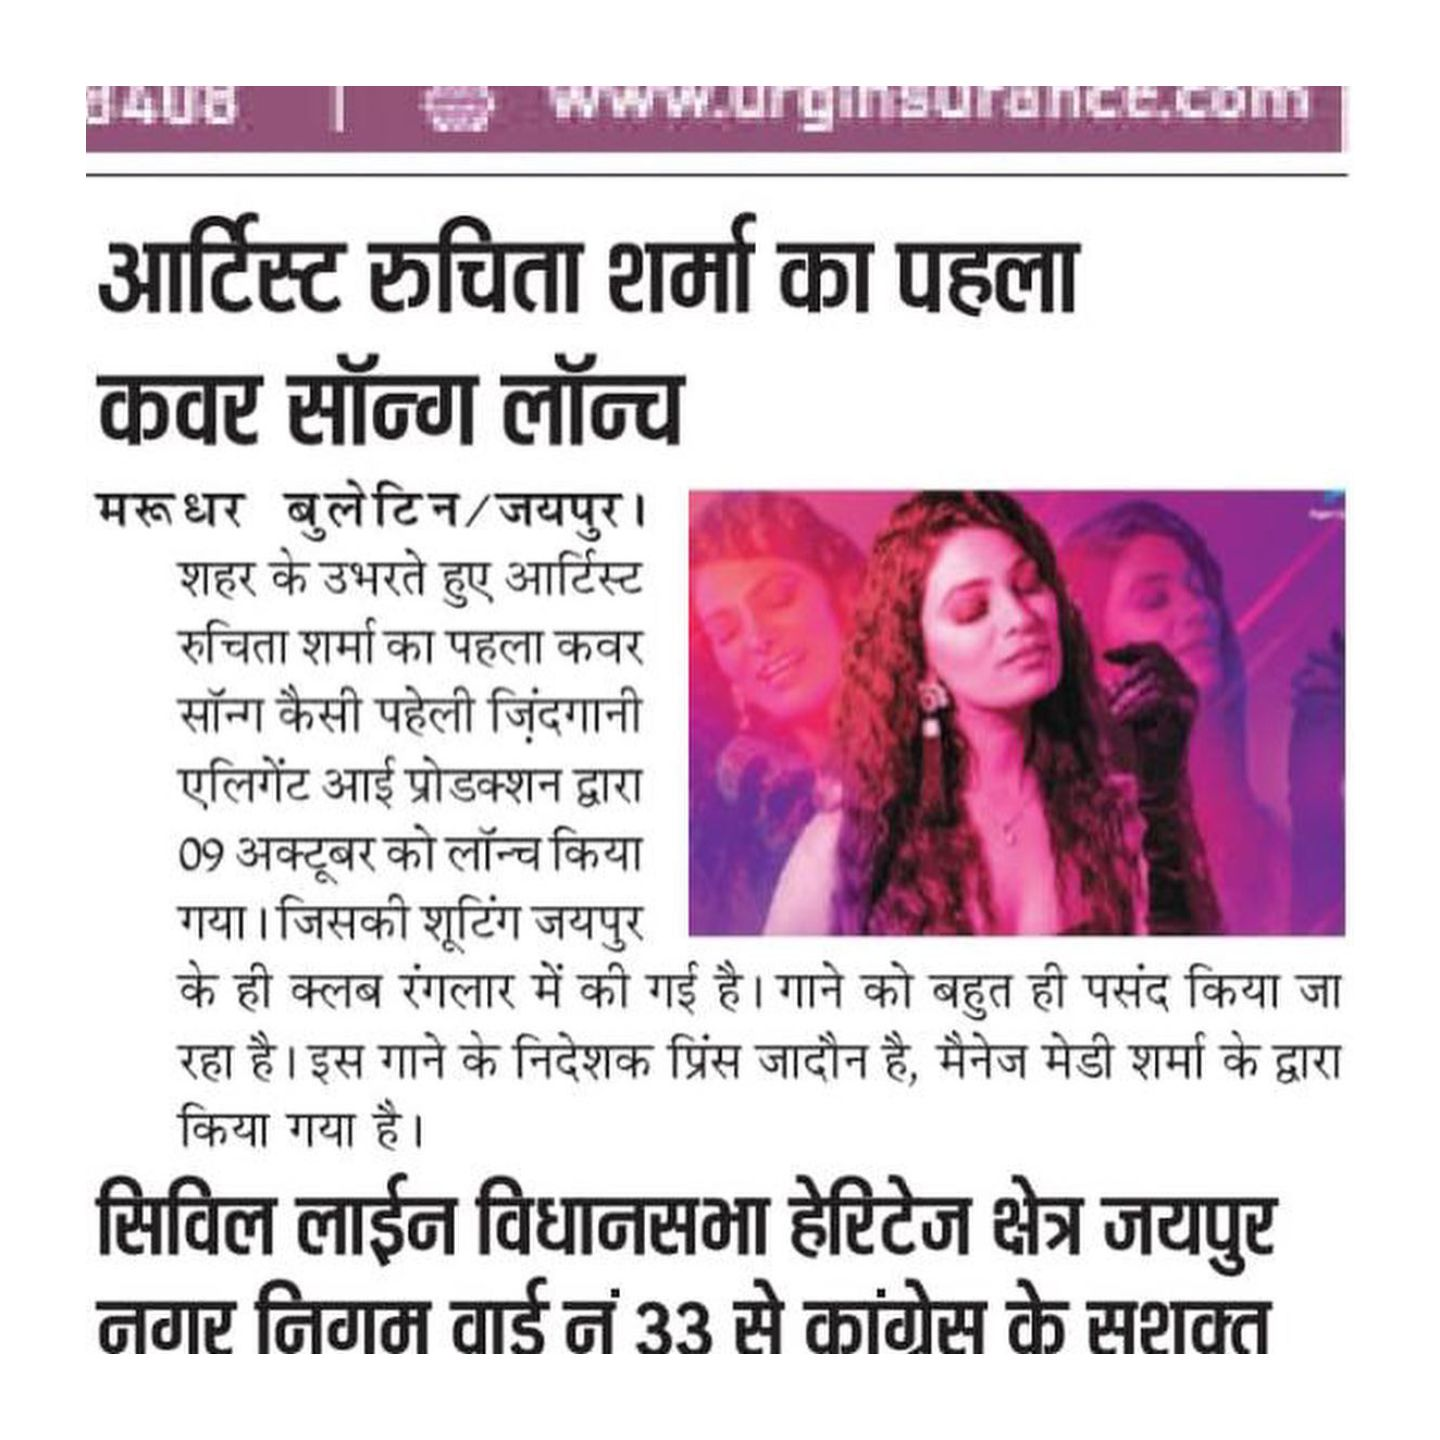 Artist Ruchika Sharma's first cover song release